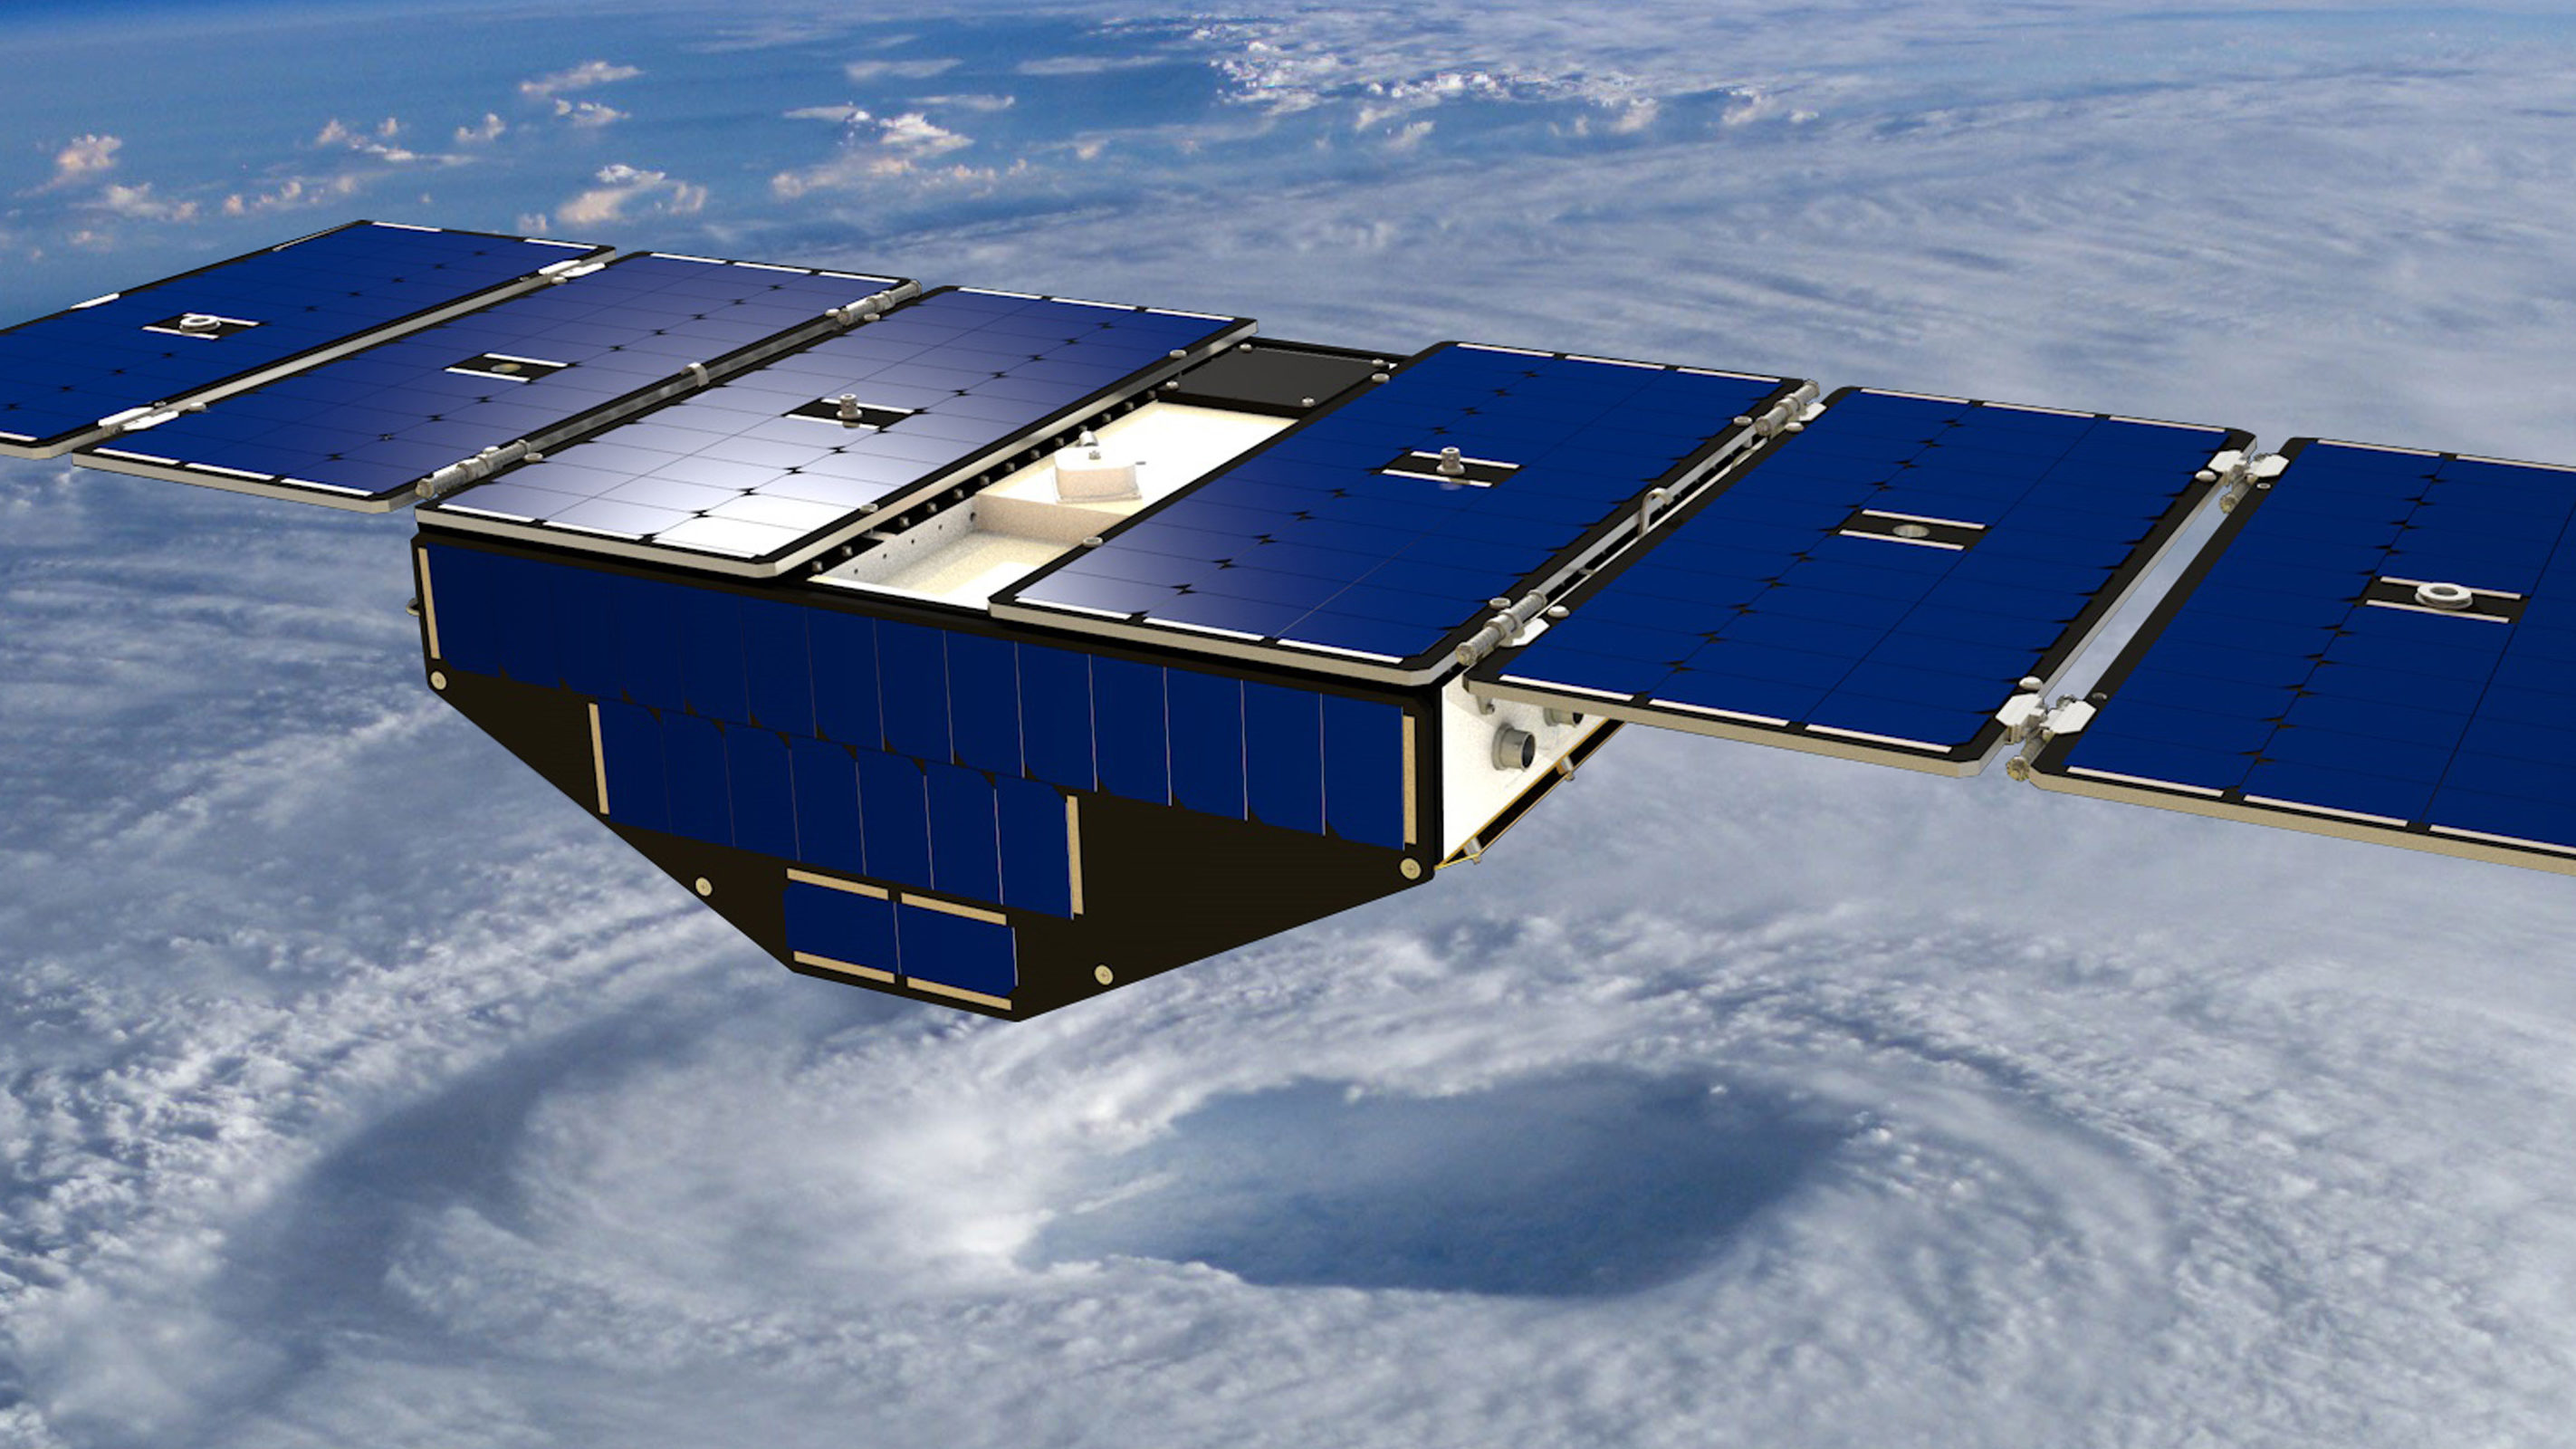 Hurricane-tracking CYGNSS satellite system gets NASA renewal as it expands its reach